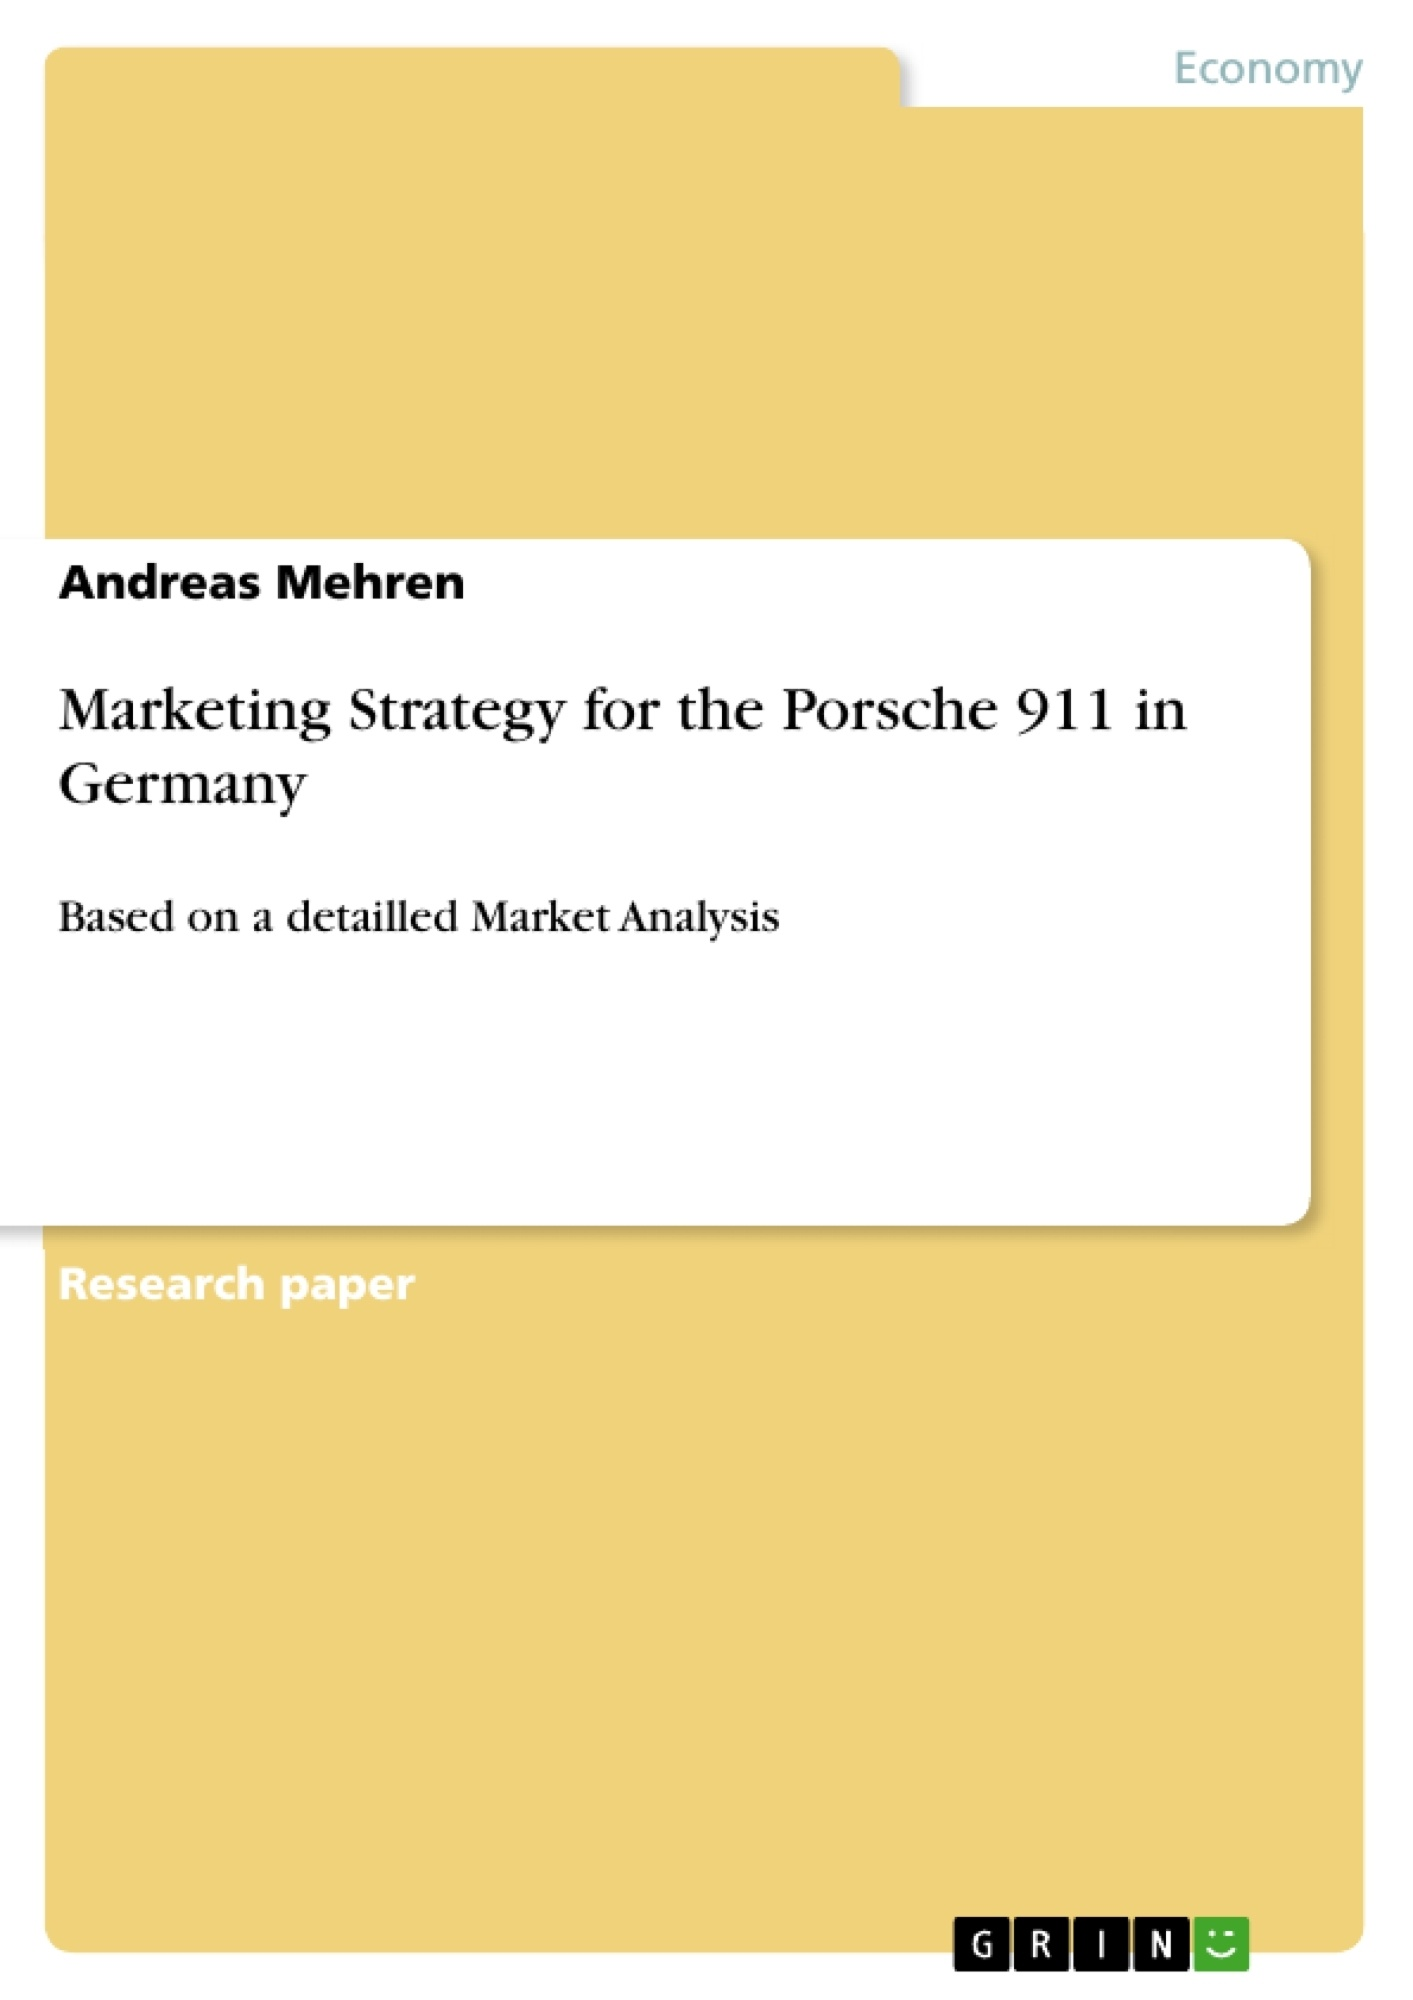 Title: Marketing Strategy for the Porsche 911 in Germany